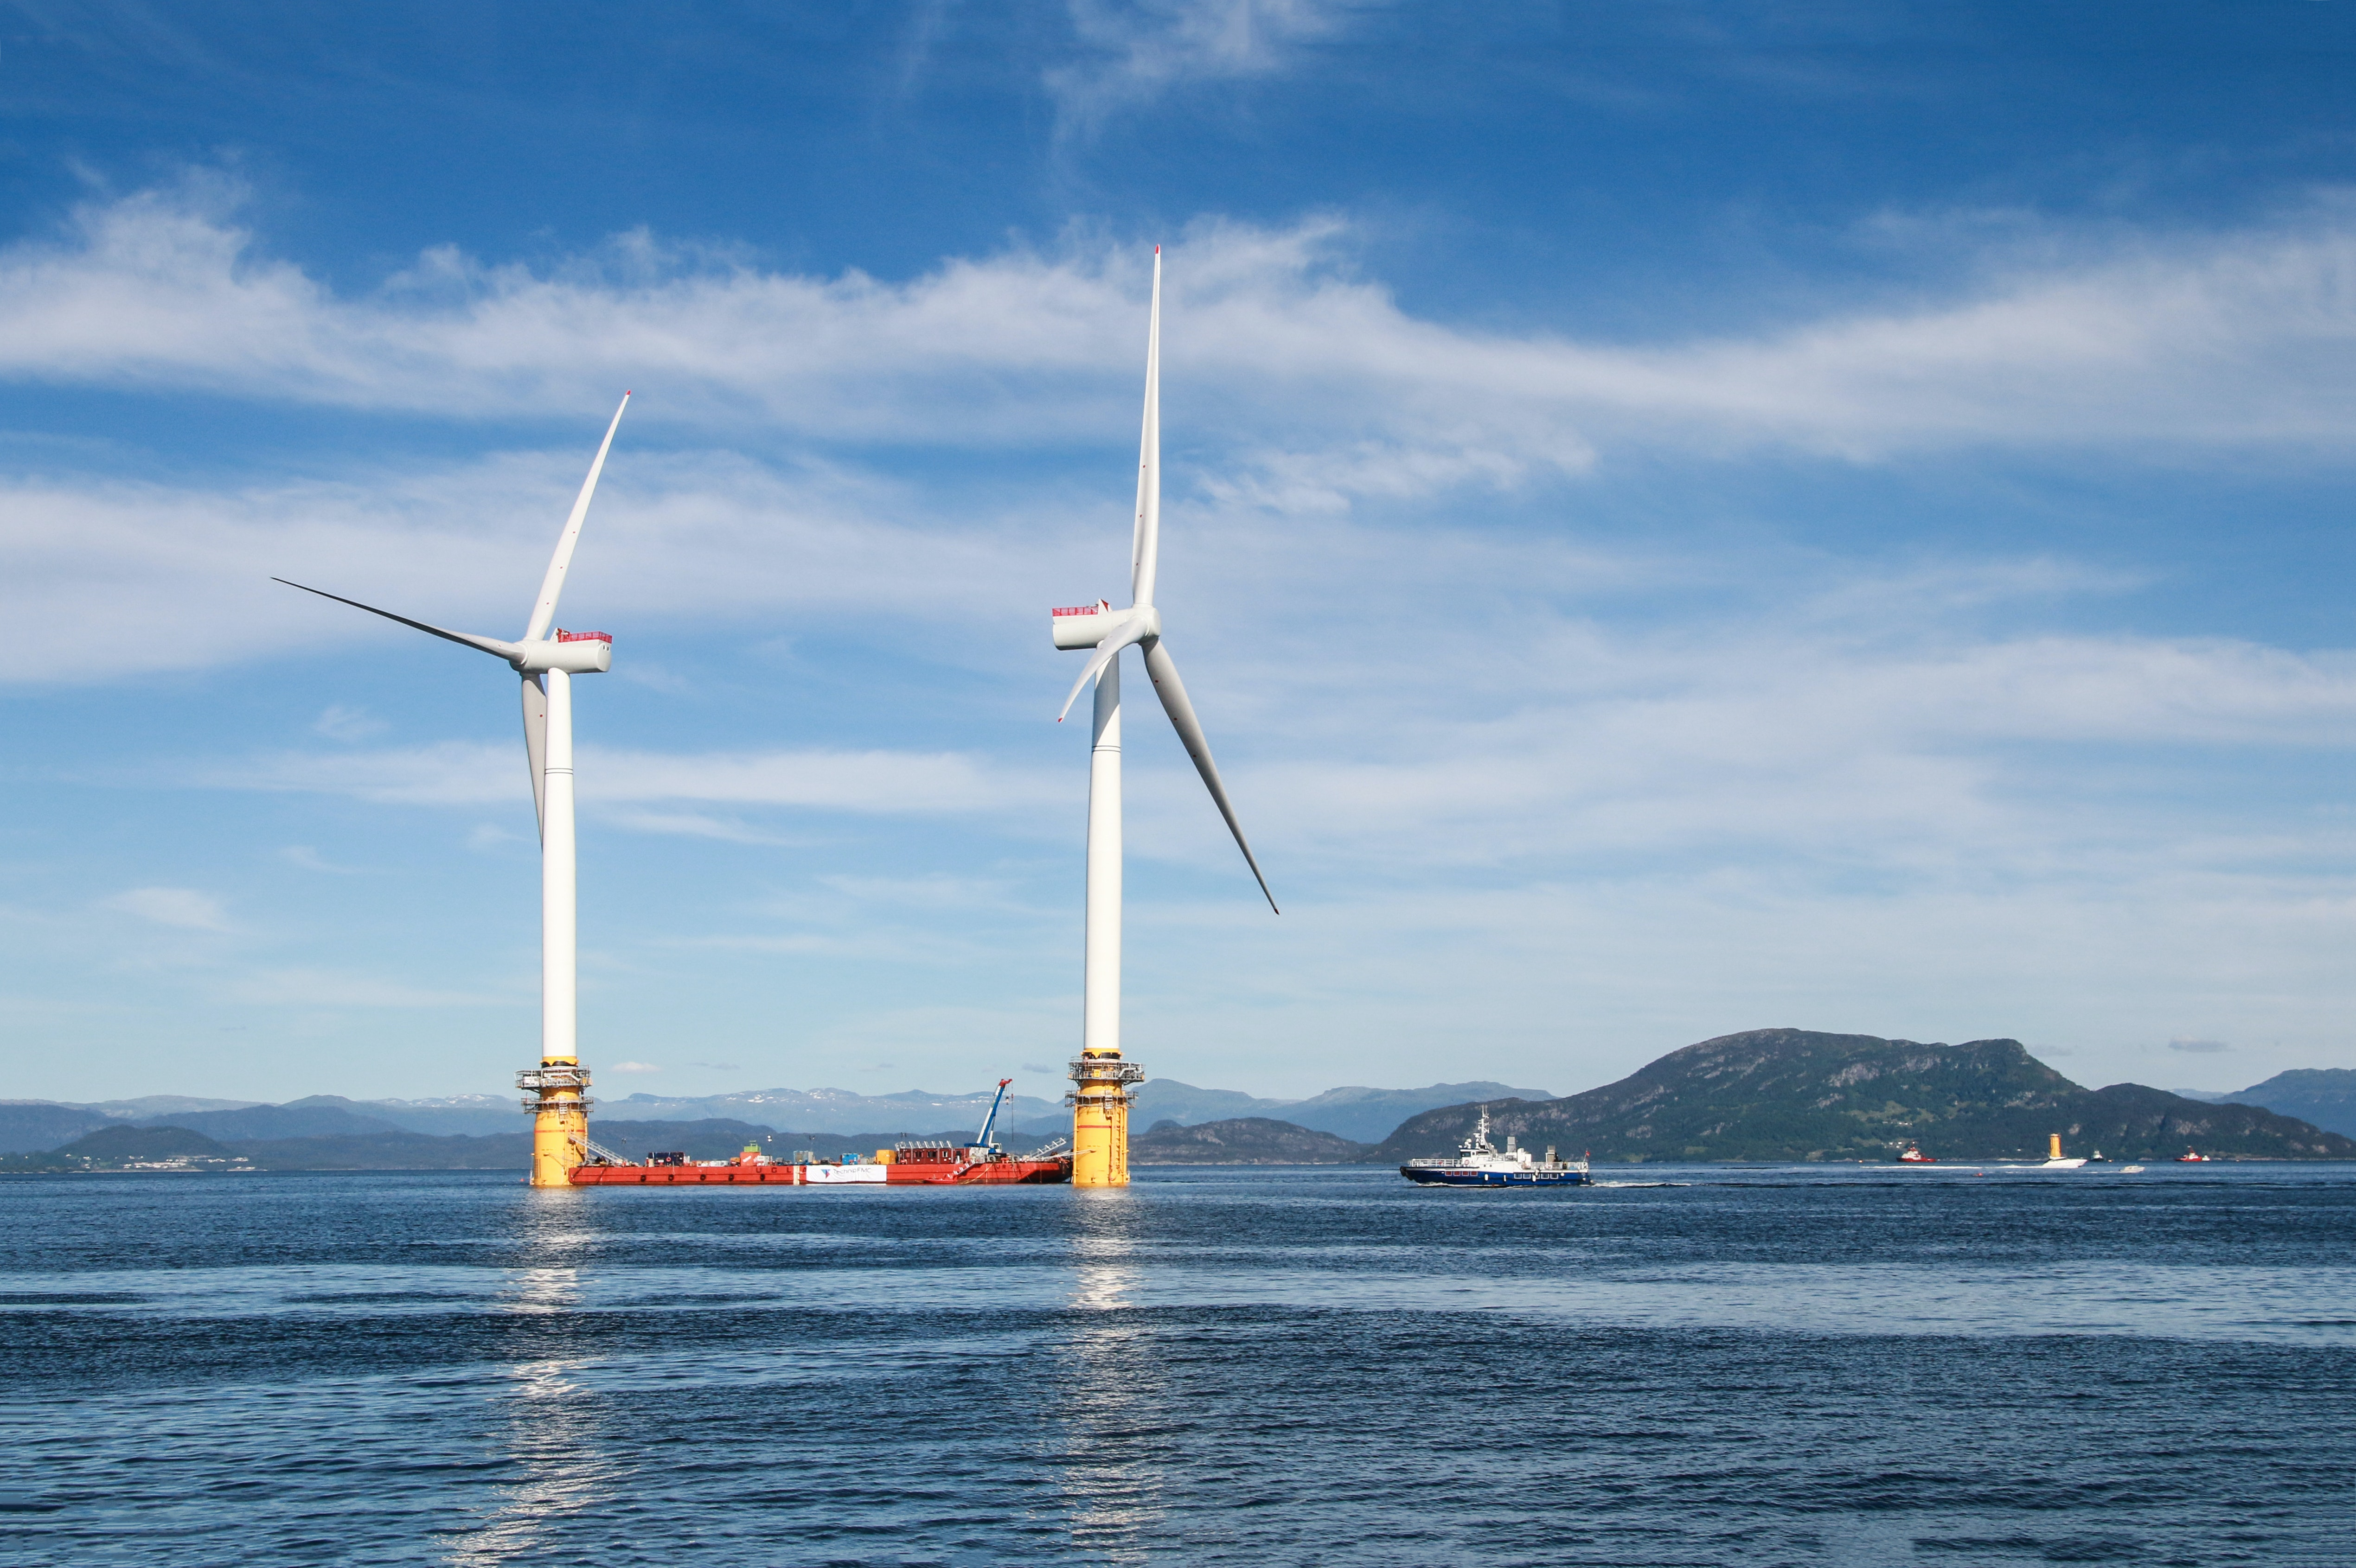 Two floating wind turbines with a ship in between.